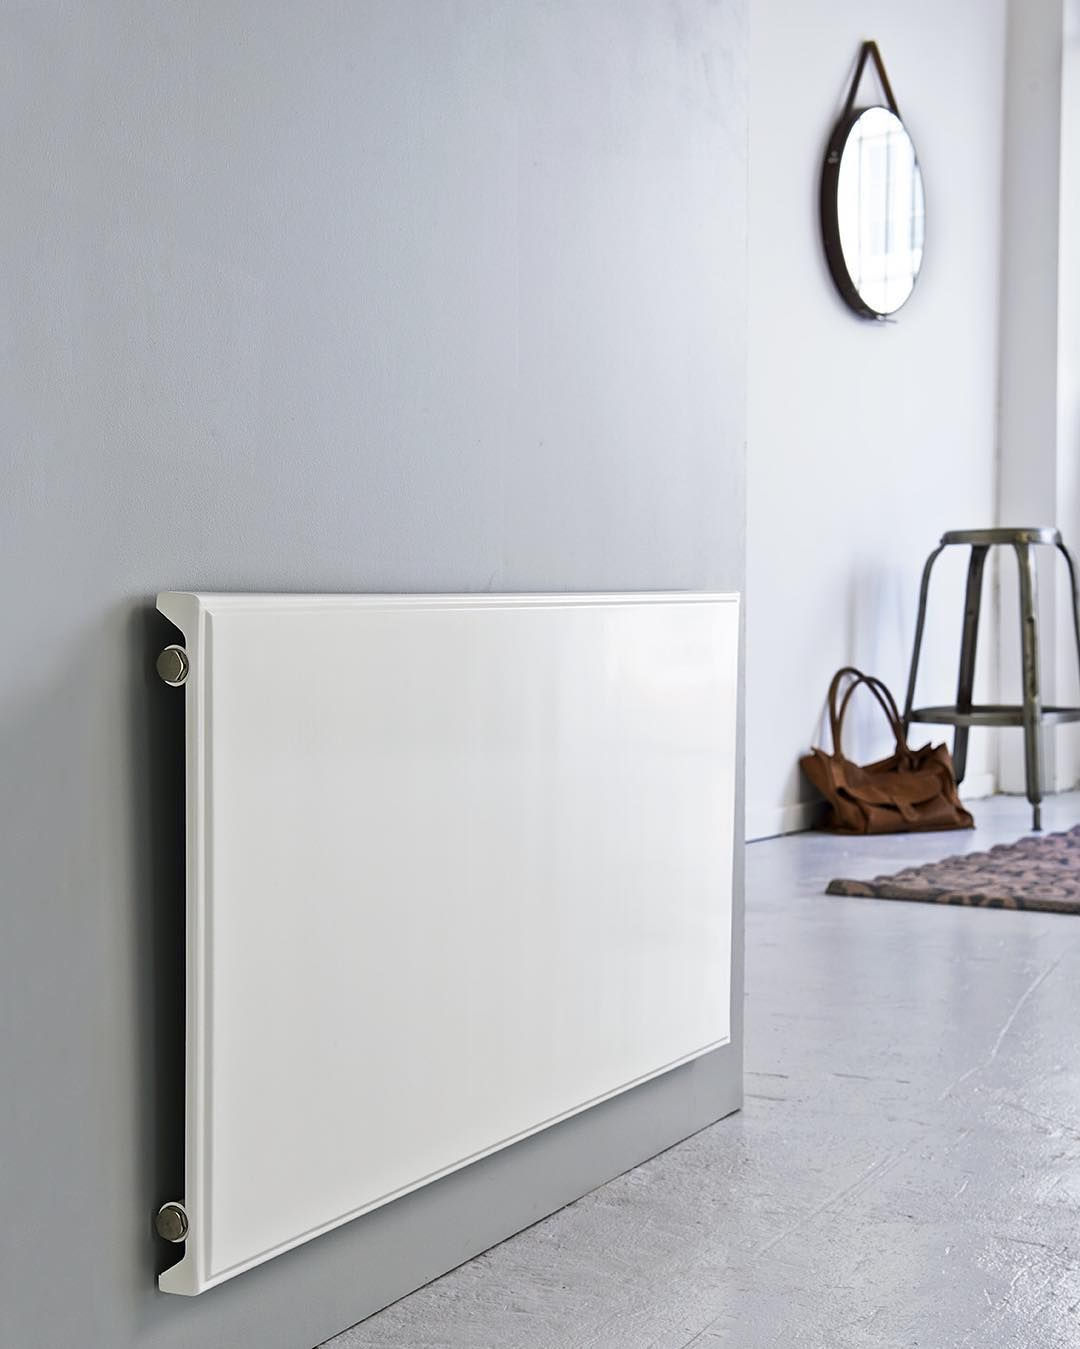 Sleek And Clean Design In This Hudevad P5 Radiator Flat Panel Radiators Radiators Flat Radiators